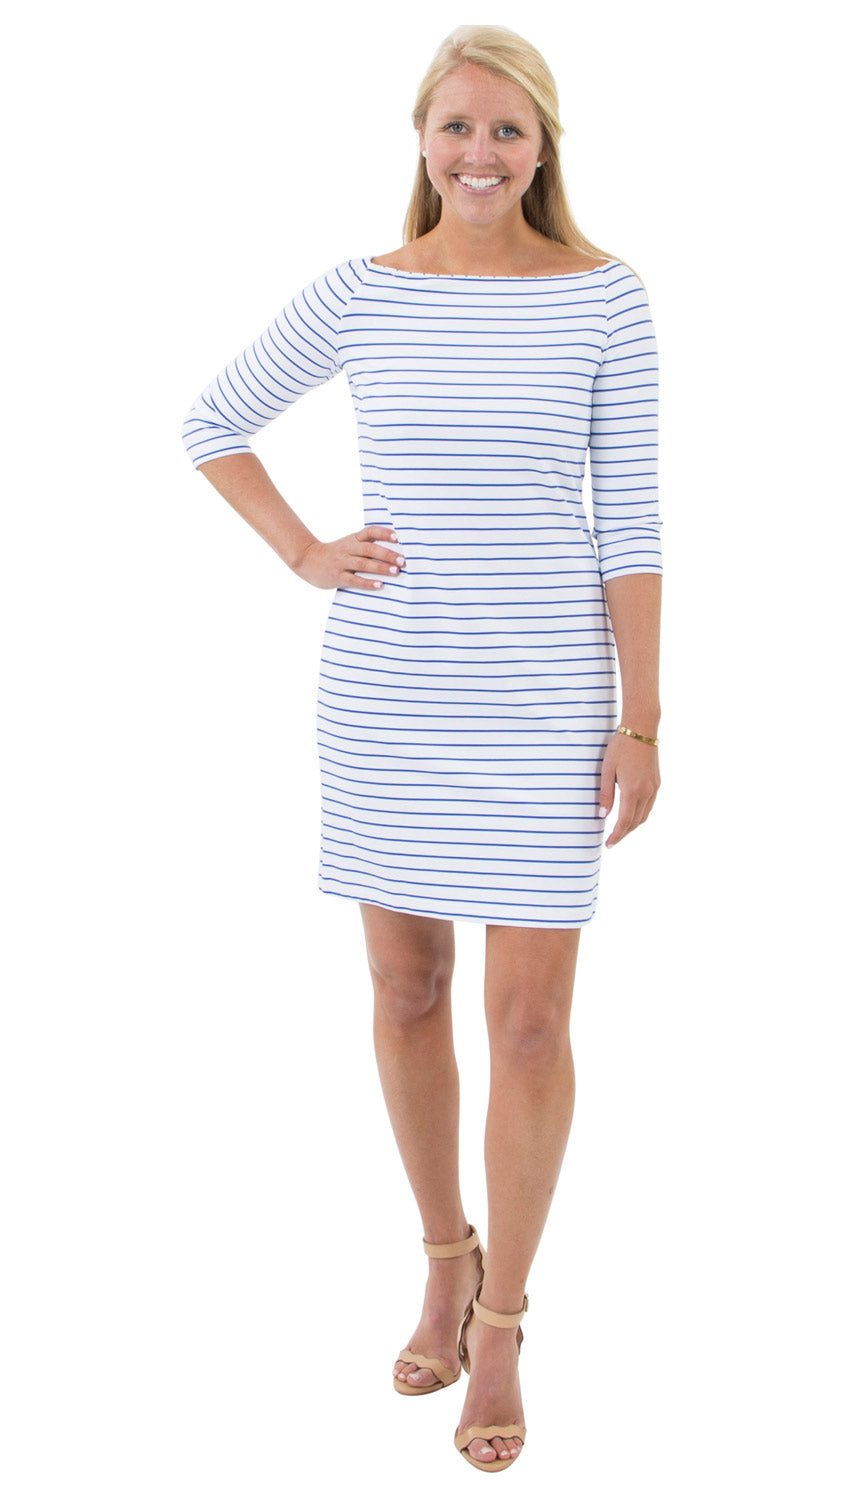 Islander Dress - Breton Stripes White/Royal